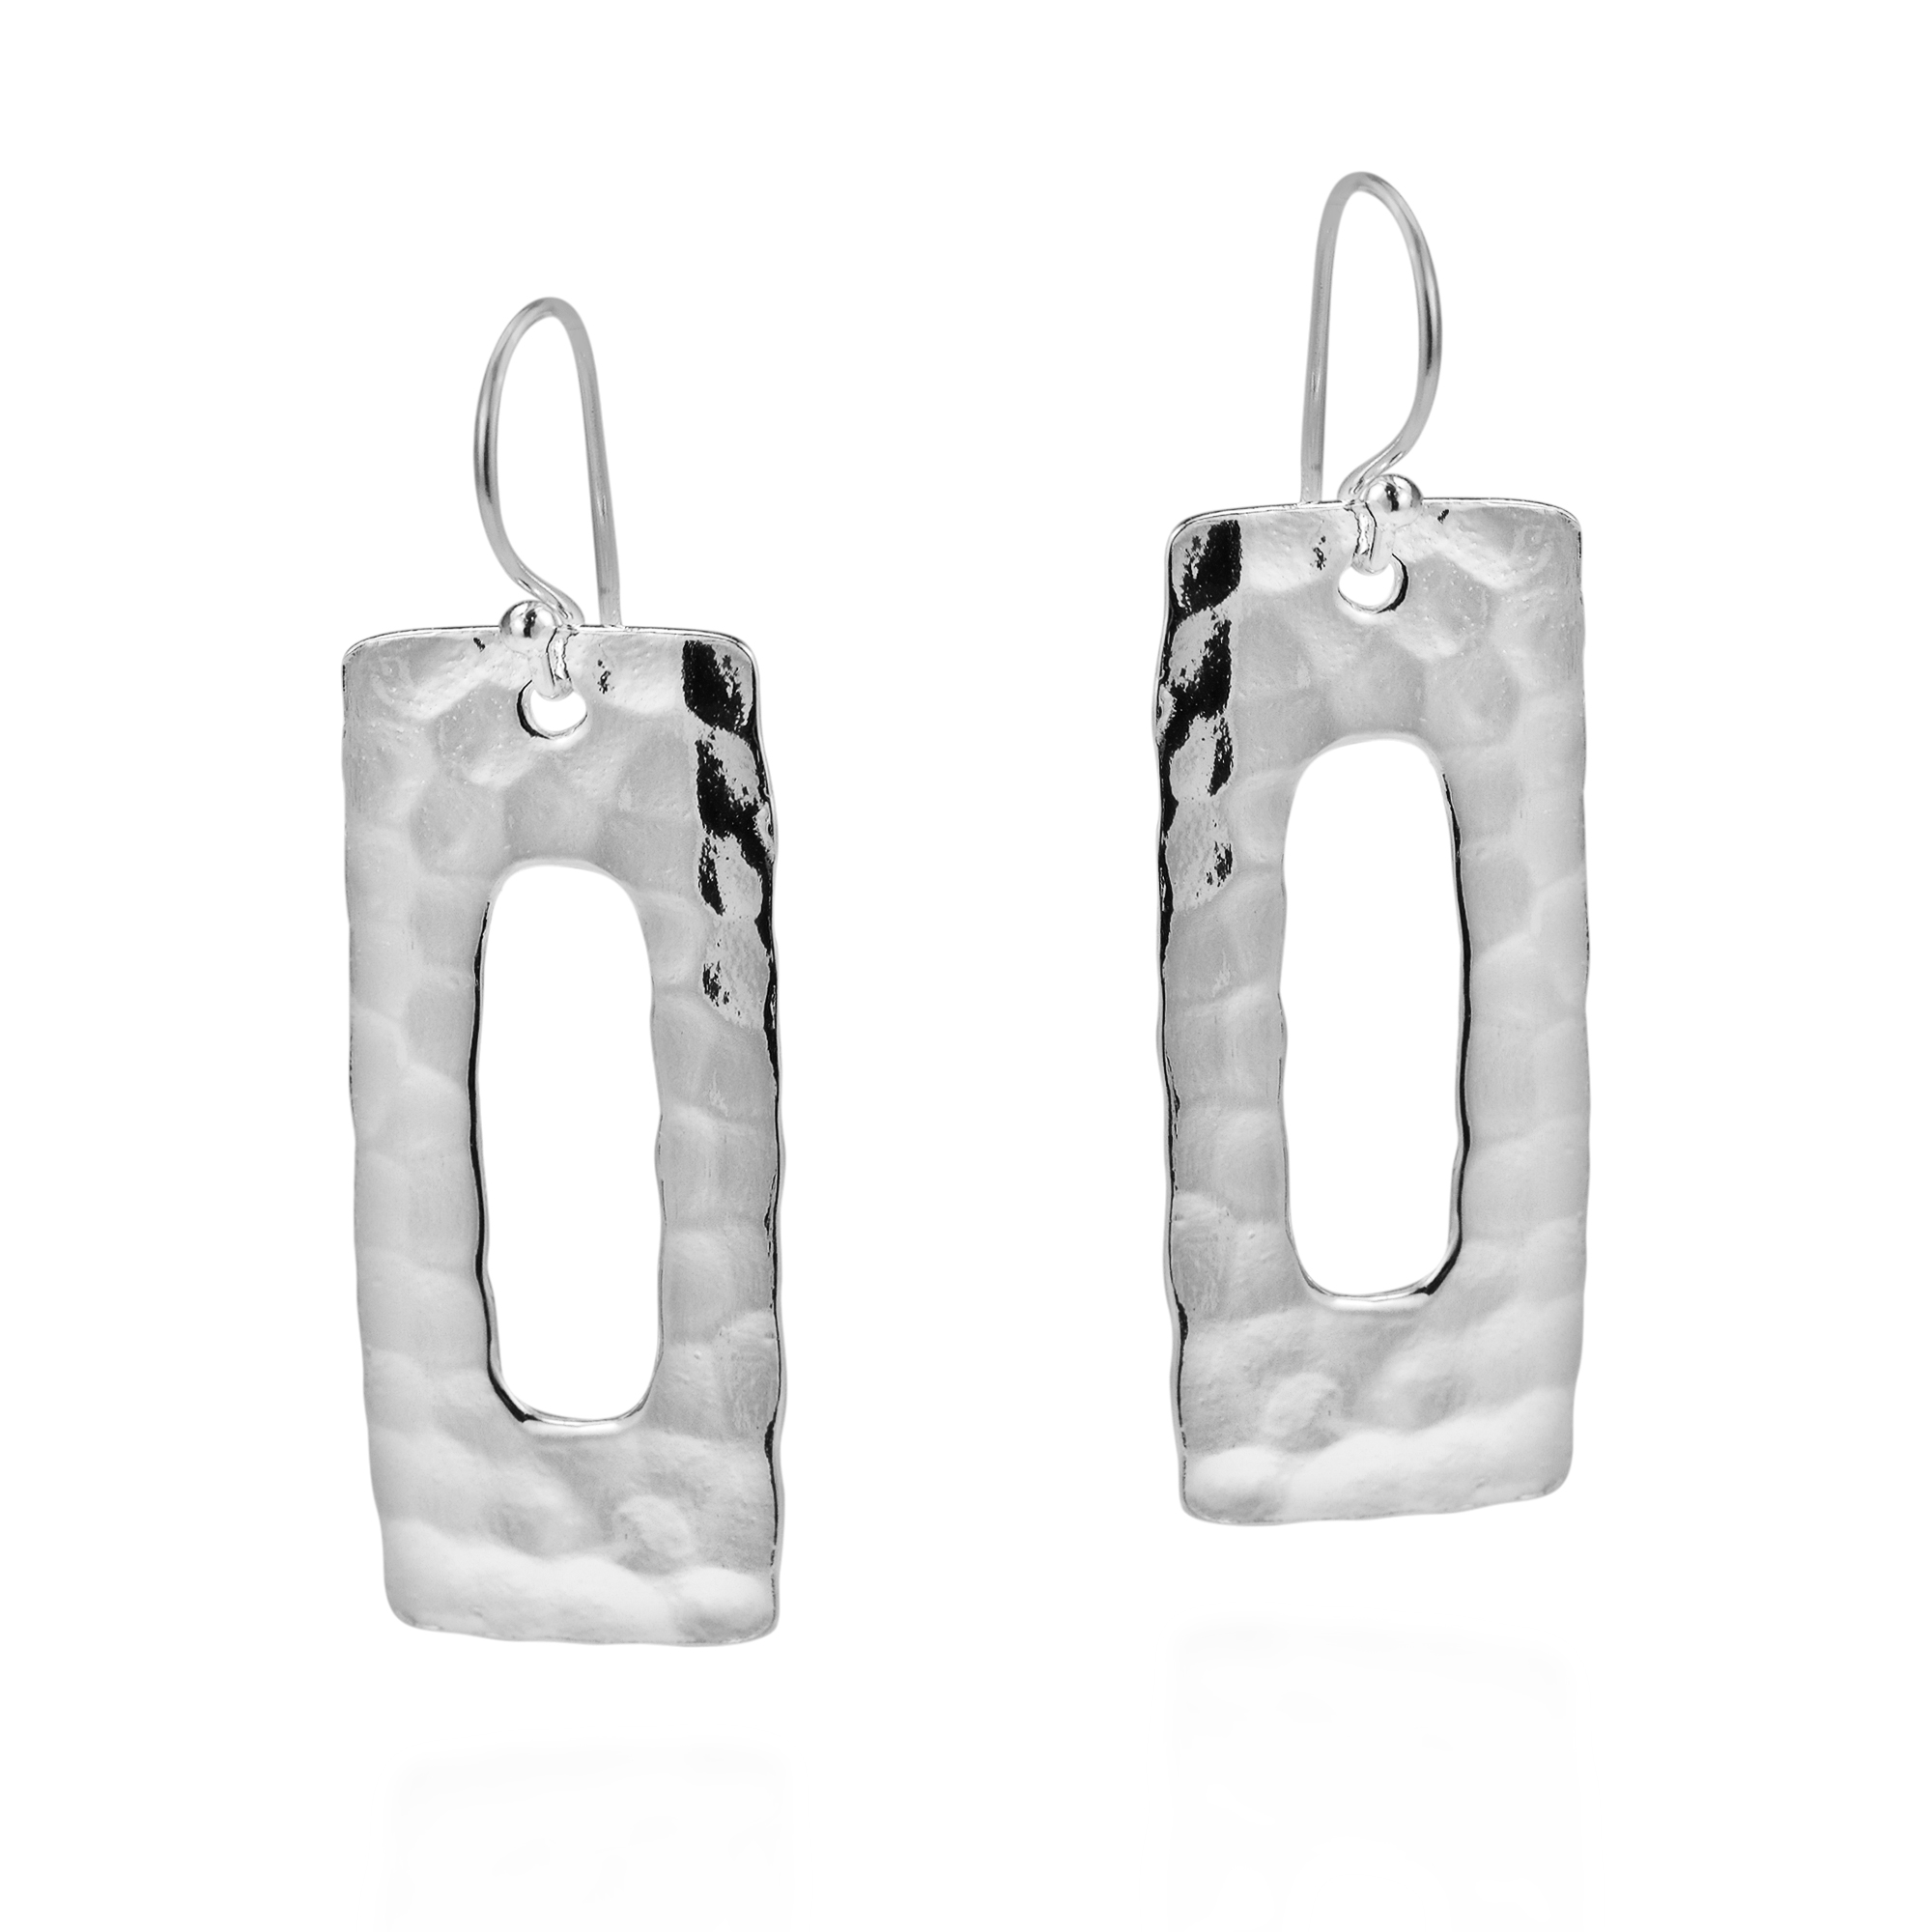 Crafted With Sterling Silver By Kung From Thailand These Earring Gives Your Outfit A Unique Look